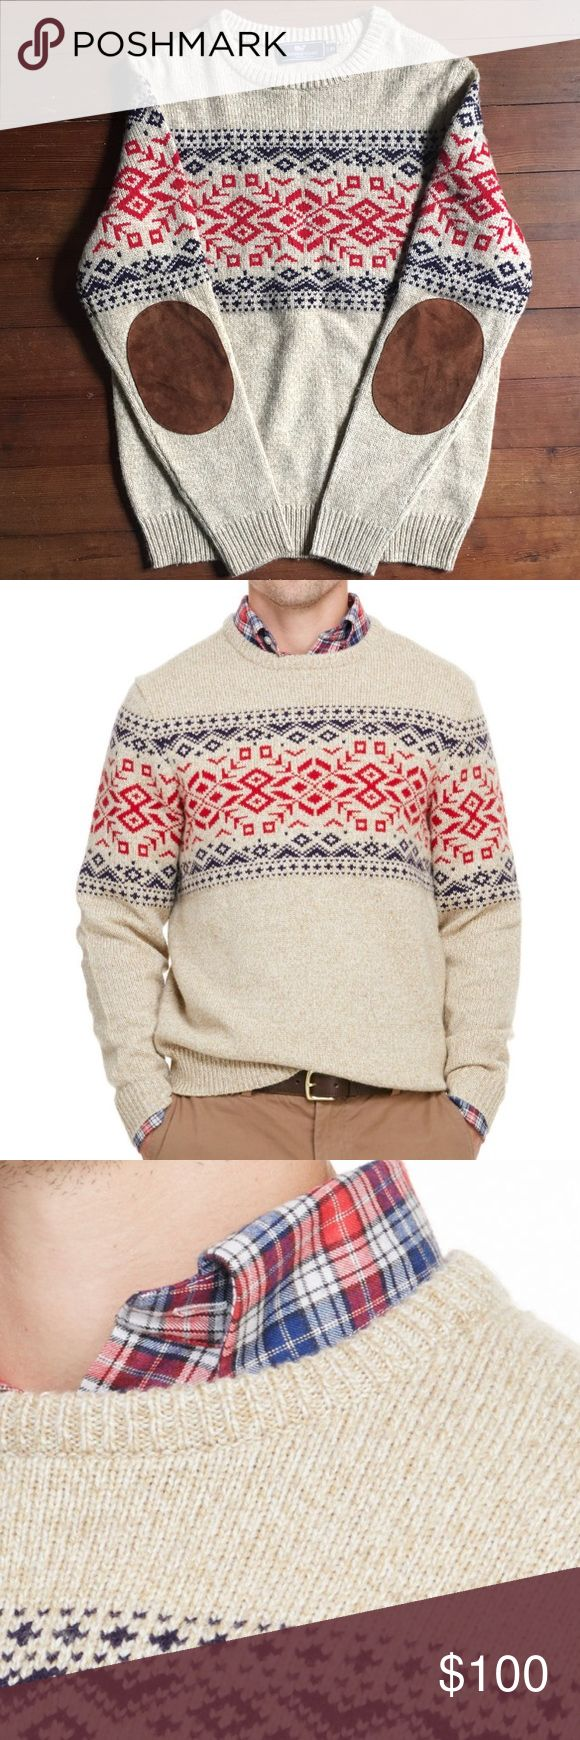 Vineyard Vines Sweater This Rag Fair Isle Sweater with elbow pads from vineyard vines is perfect for those chilly nights! This sweater has never been worn!  Fabrics: · 40% merino wool, 30% acrylic, 15% vicose, 15% nylon  Features: · Rib trim on cuffs and  http://bellanblue.com